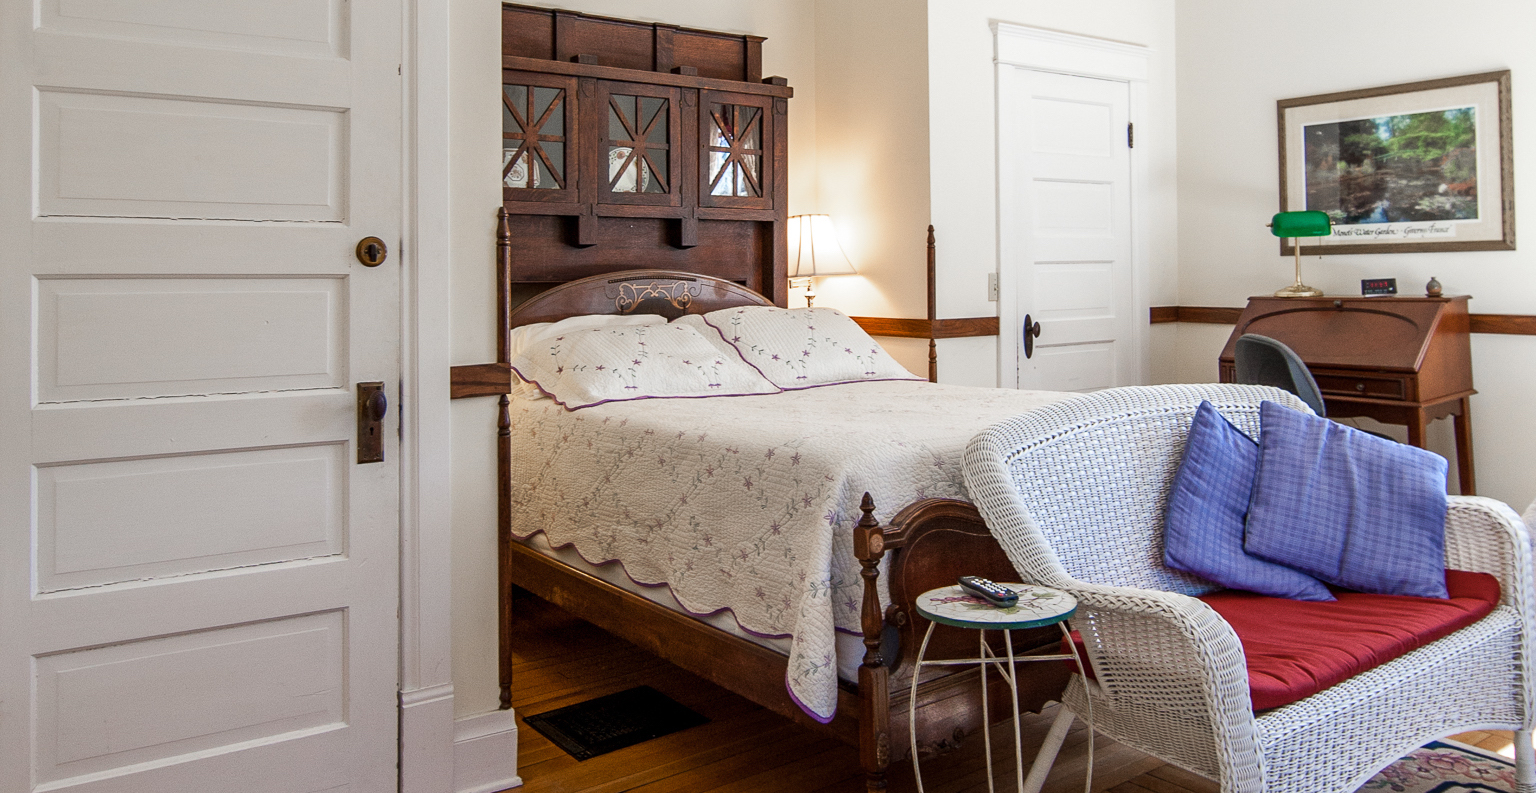 A full bed and white wicker bench in the Bluestone Room. Making it ideal lodging near Shenandoah National Park.